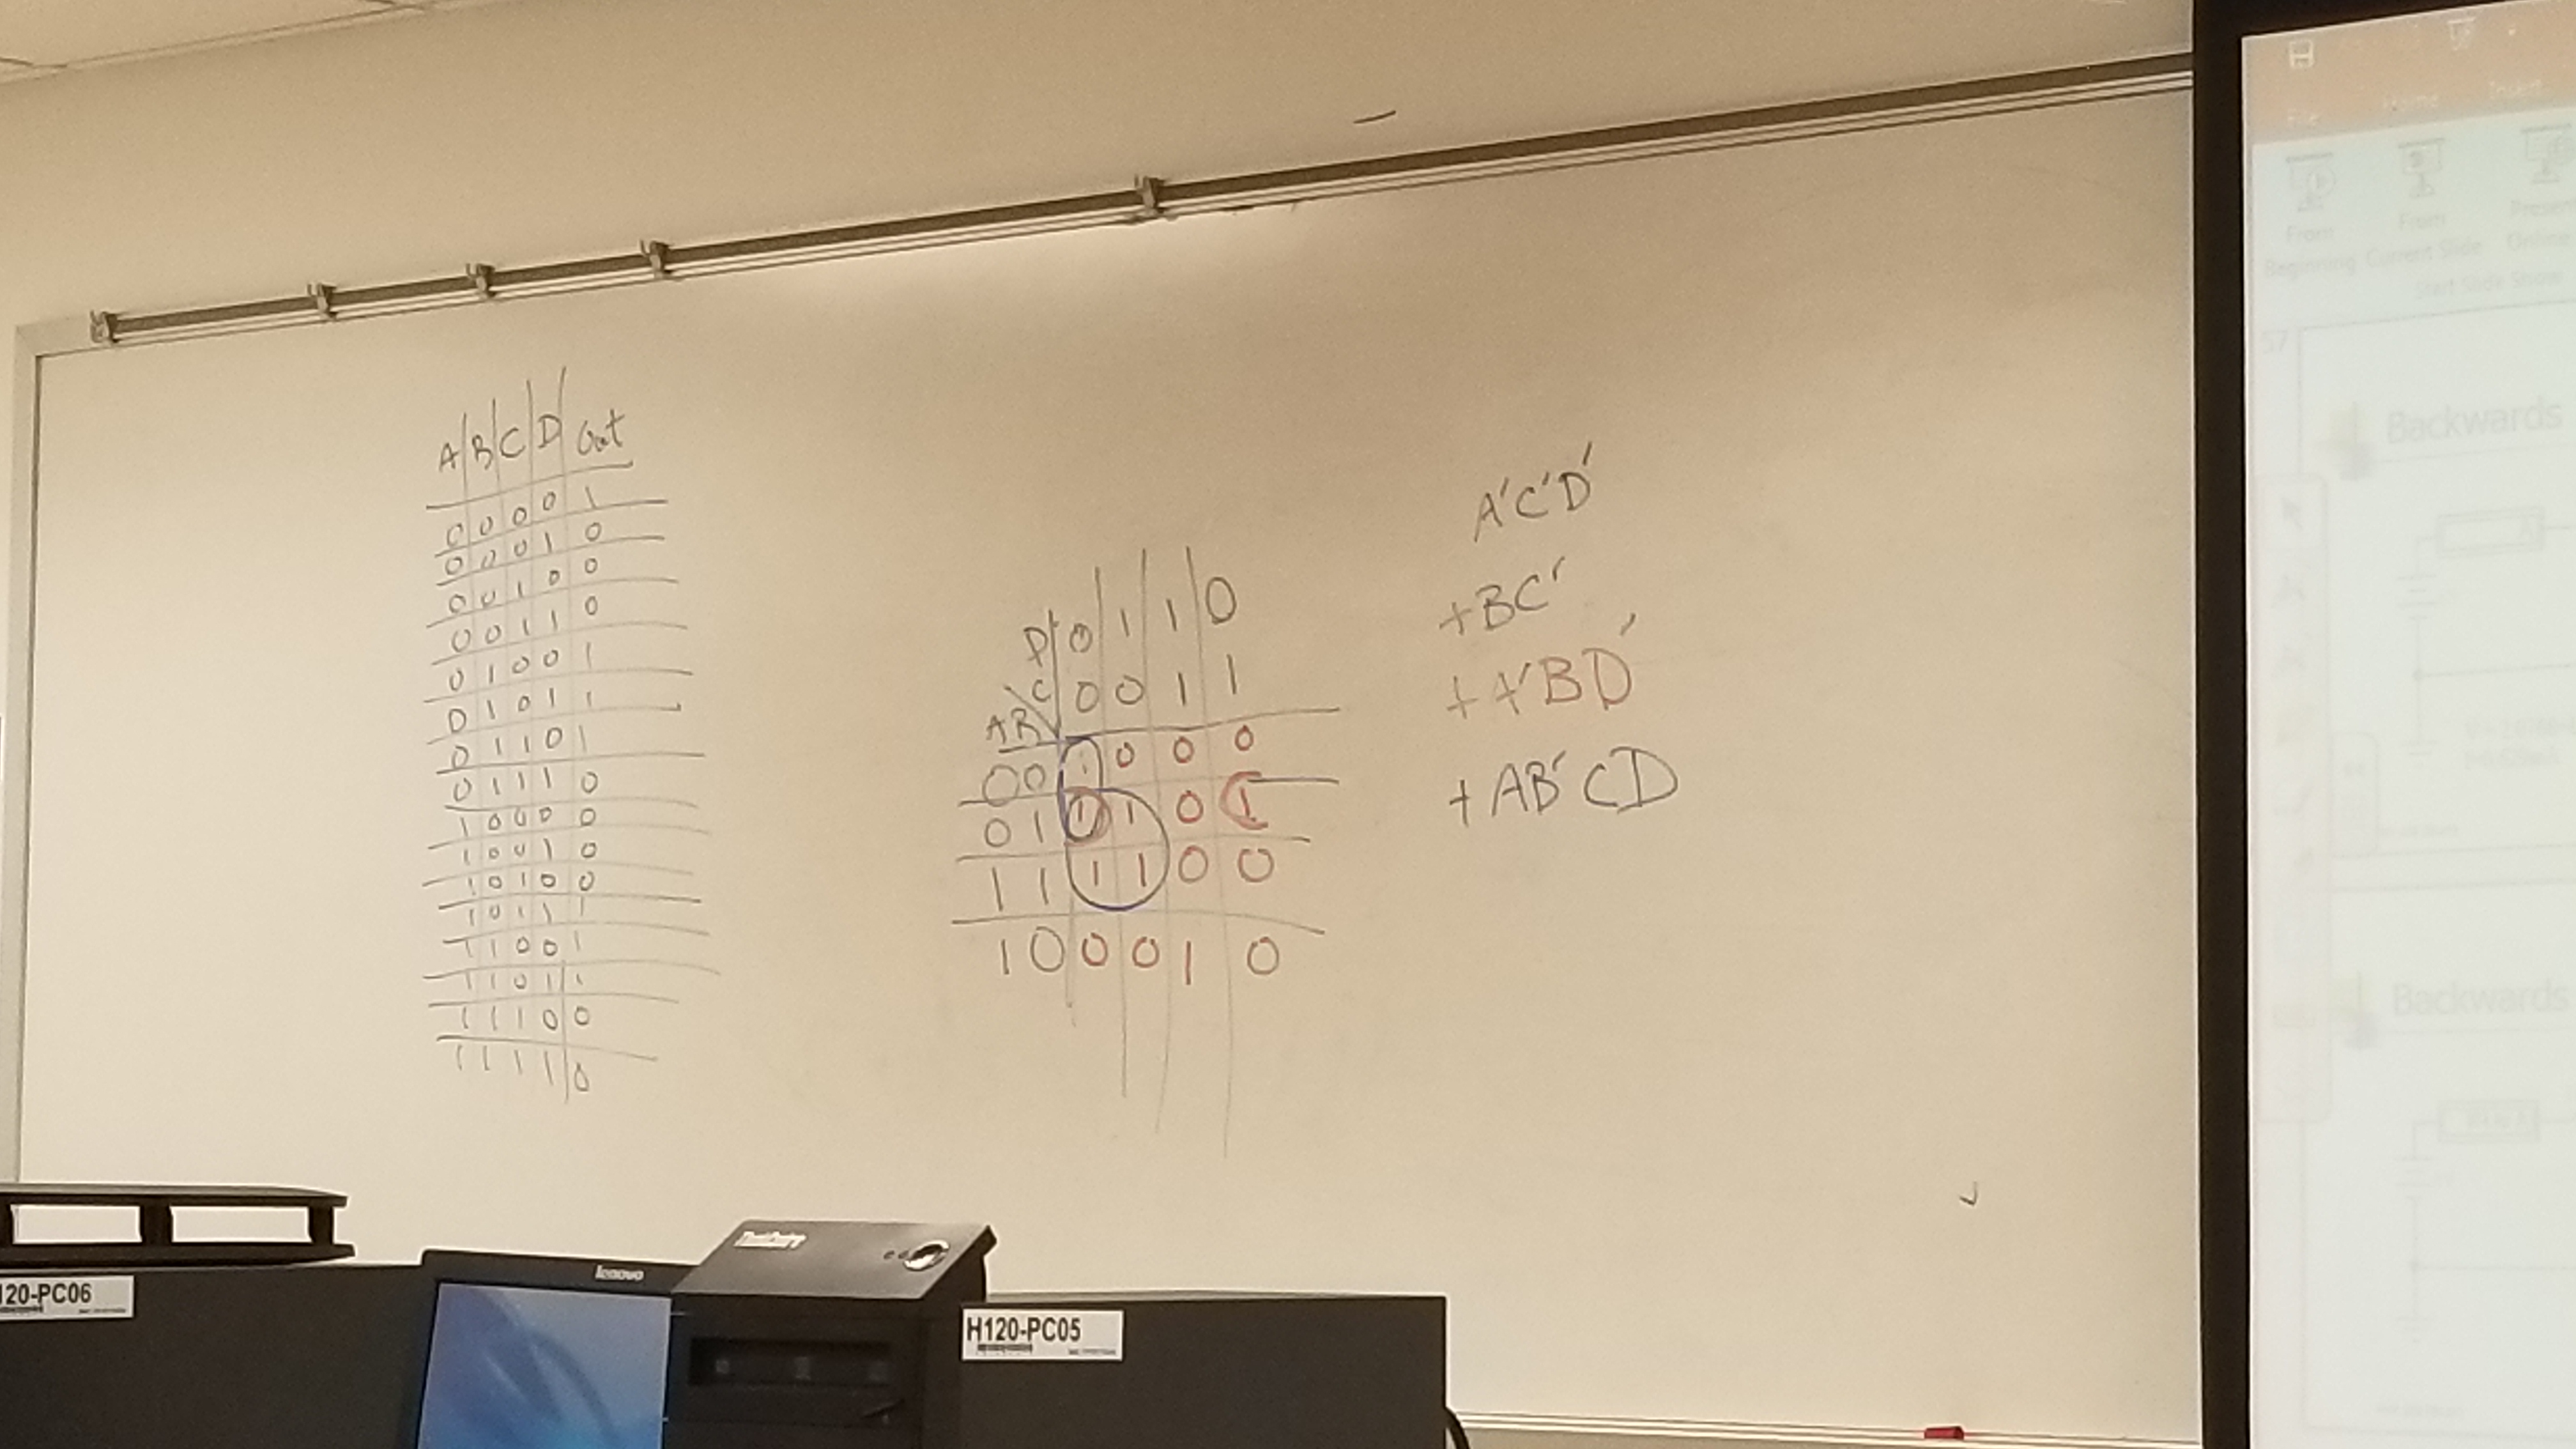 Phy 201 Week Of 2 5 18 Series Vs Parallel Circuits Youtube Video Equivalent Resistance And Resistor Circuit Analysis Worked Example Using Ohms Law Reduction Doc Physics